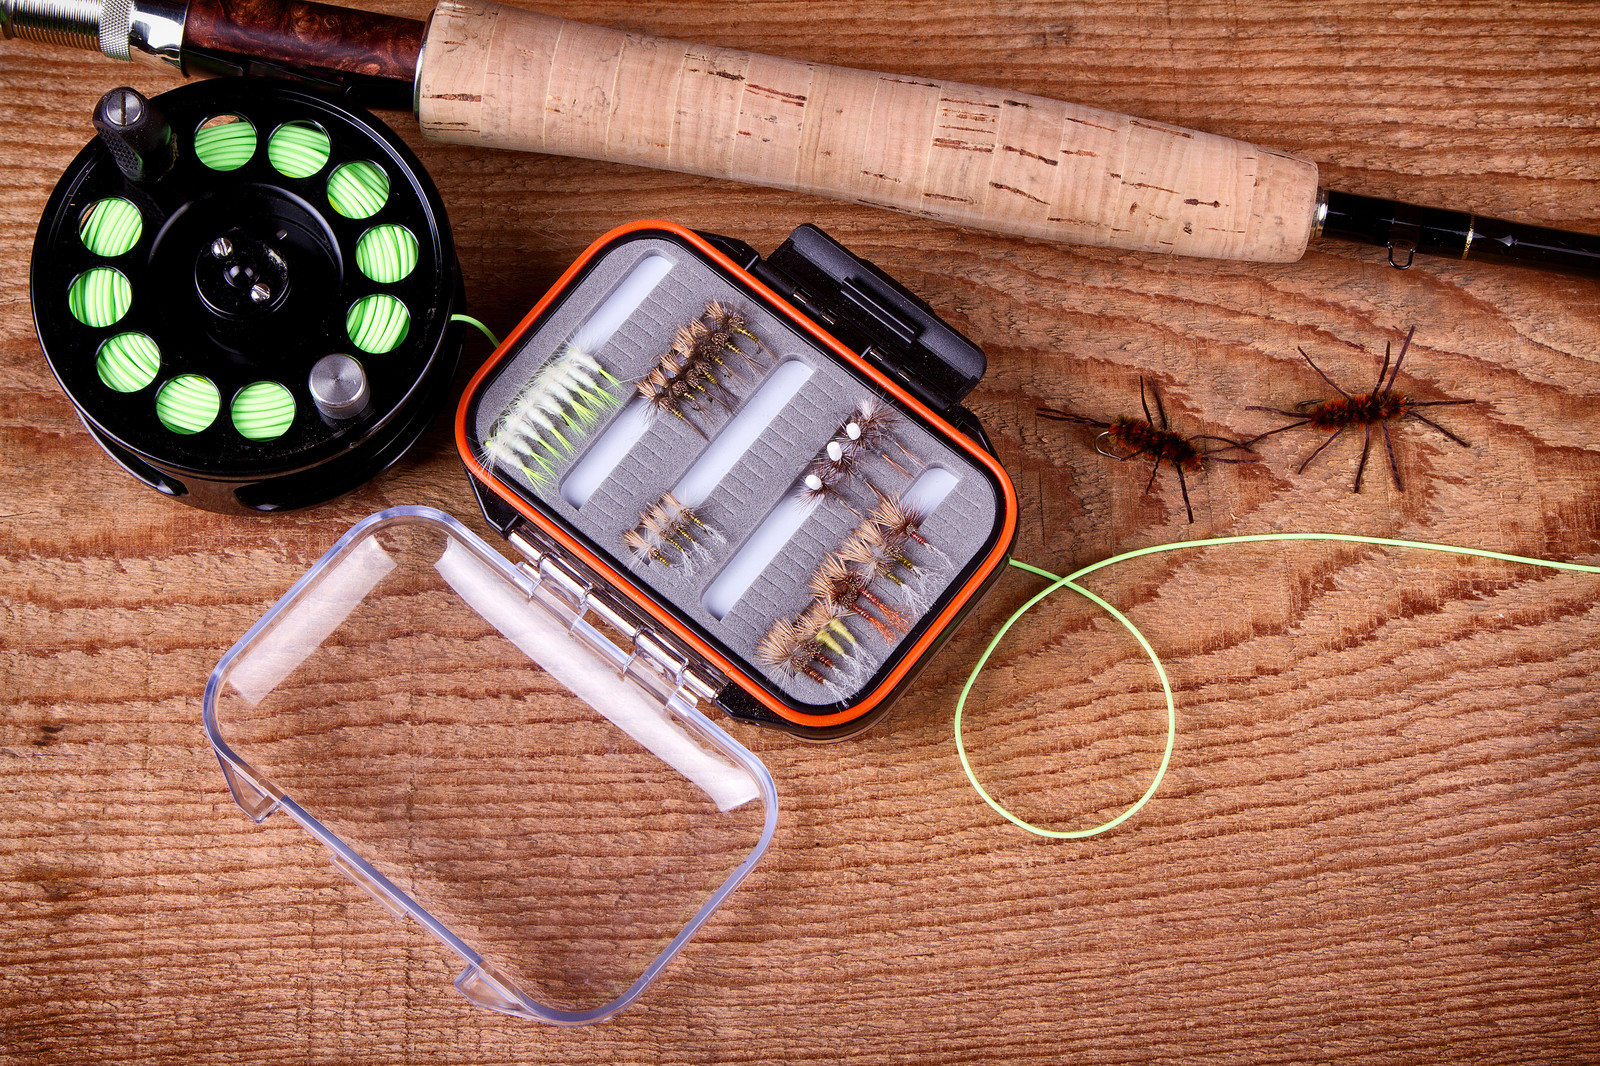 Find out what kind of fly tying kits are best for beginners.